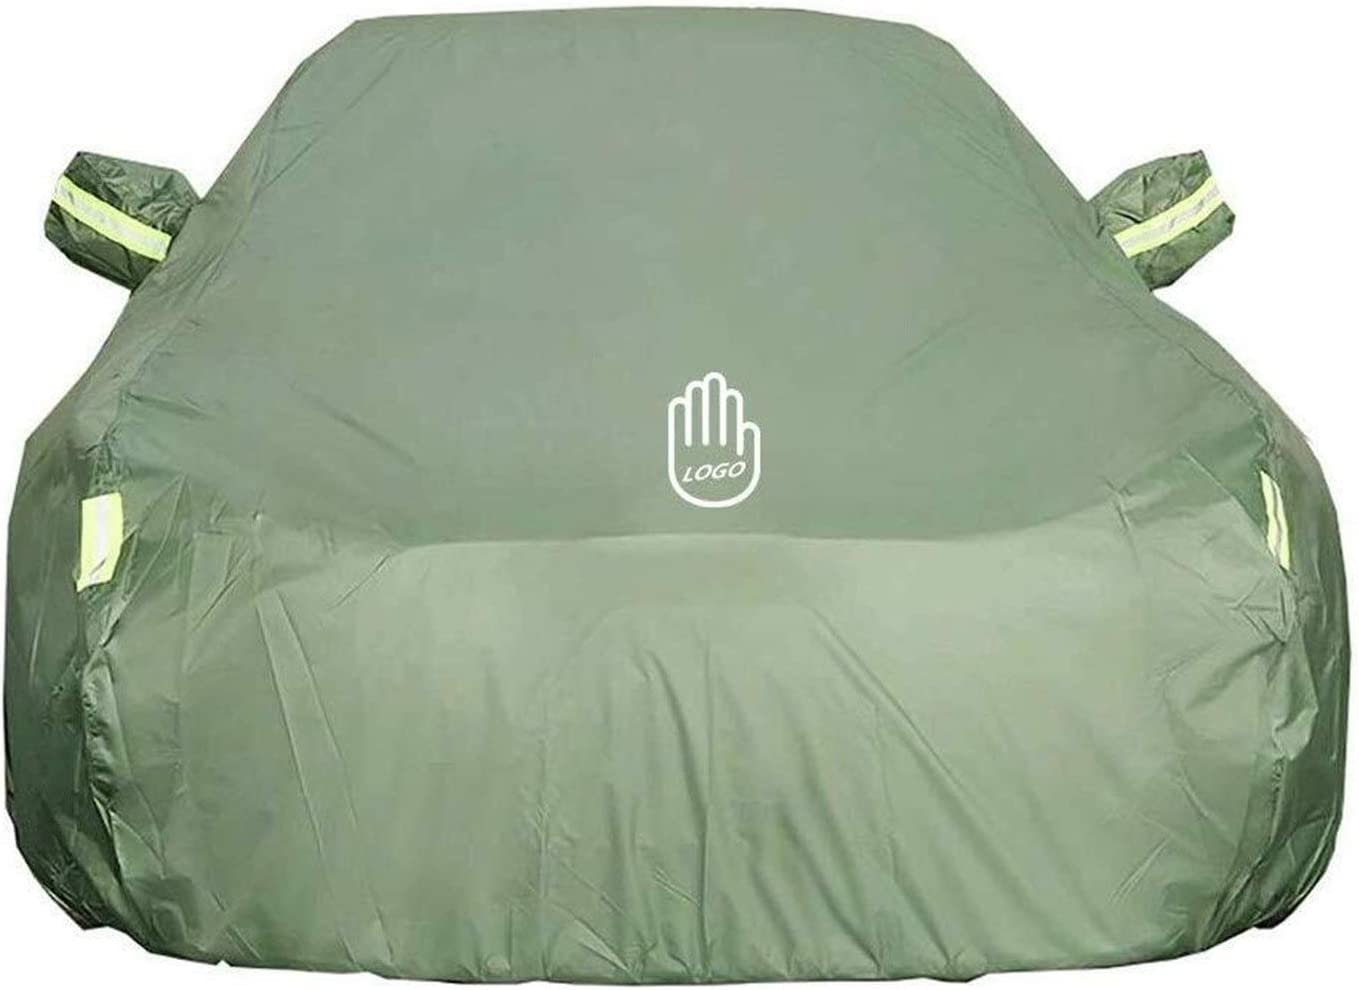 All Japan's largest assortment items in the store Car Cover Compatible With Toyota Hybrid Protectio Sun Highlander